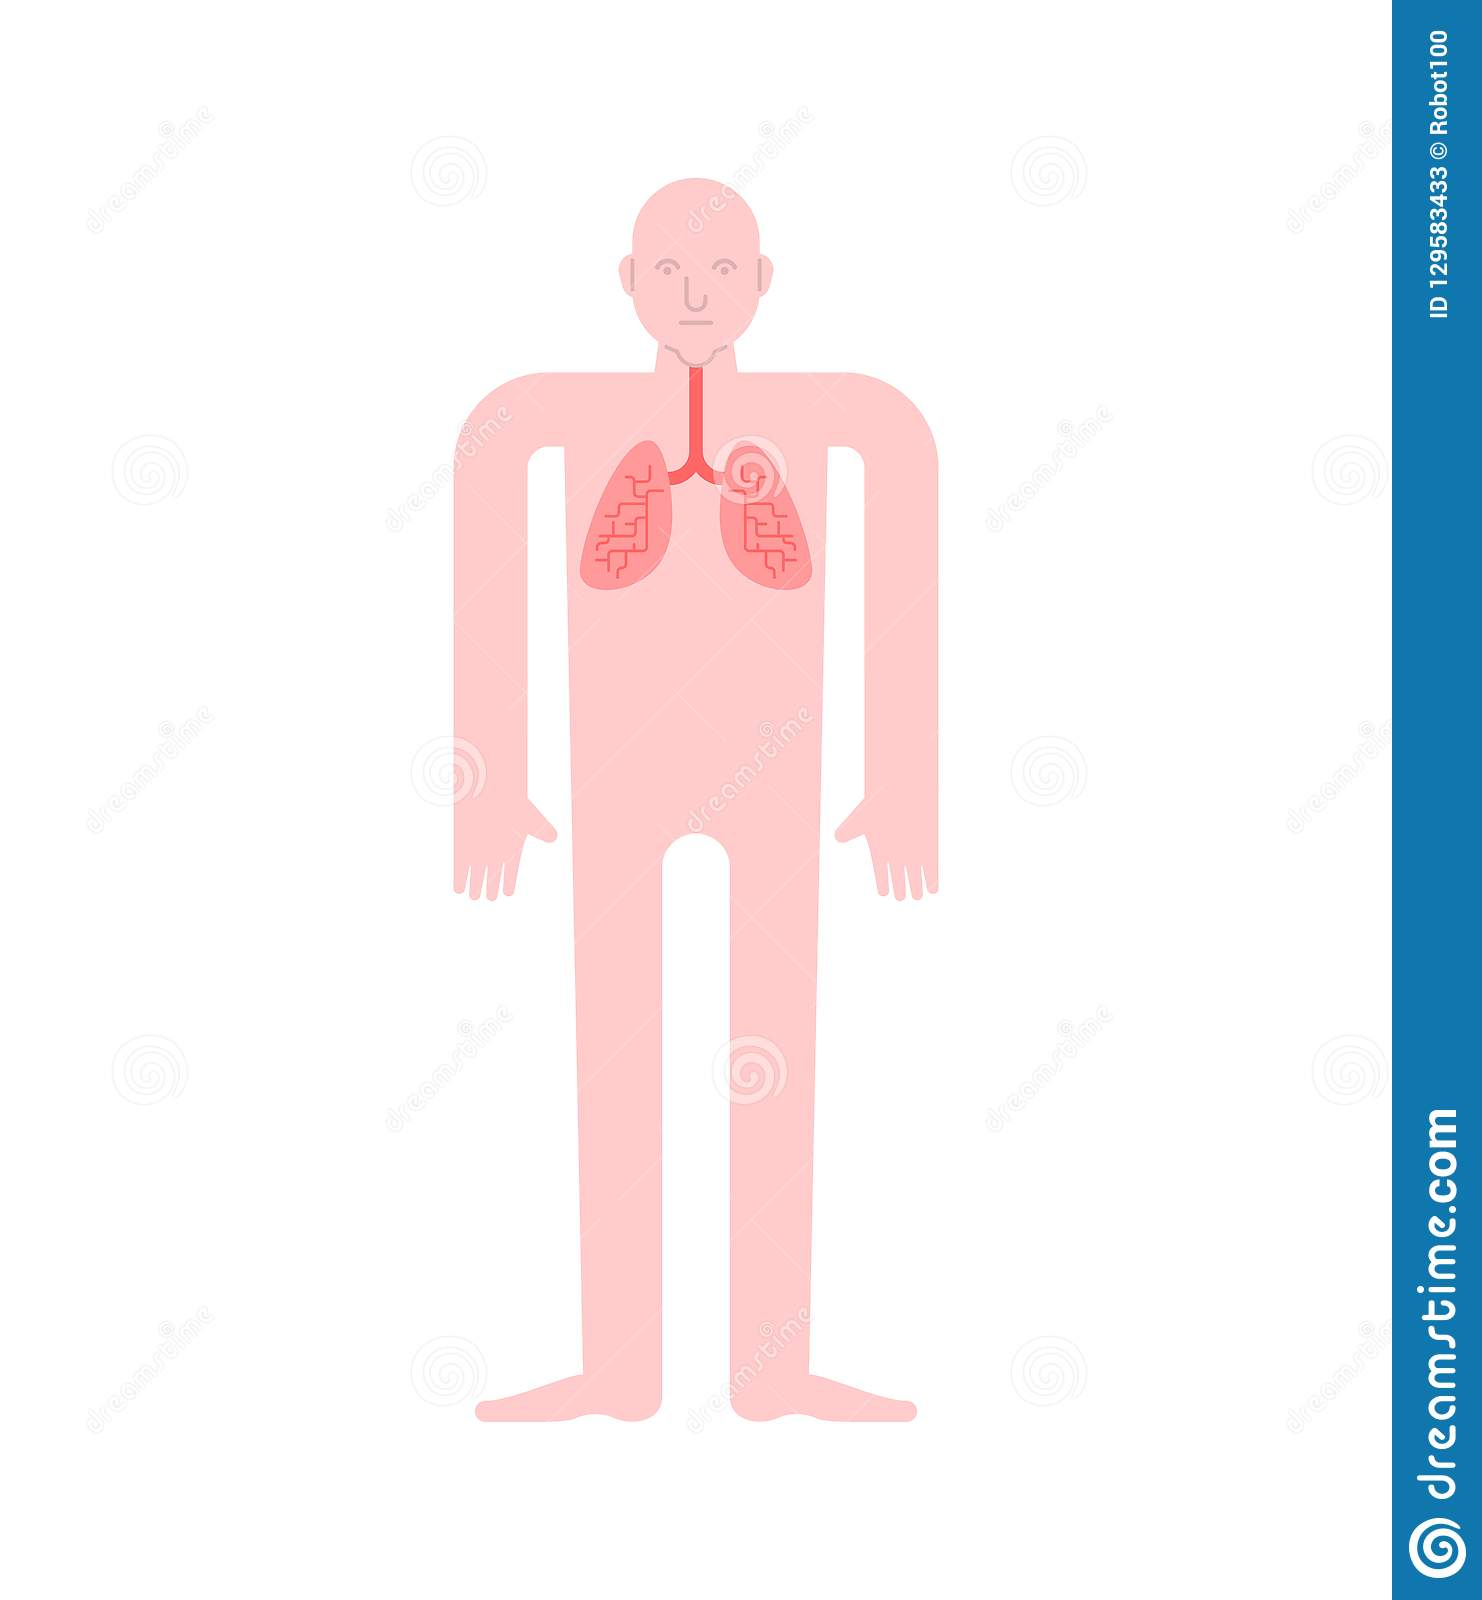 Lungs Human Anatomy Gastrointestinal Tract Internal Organs Systems